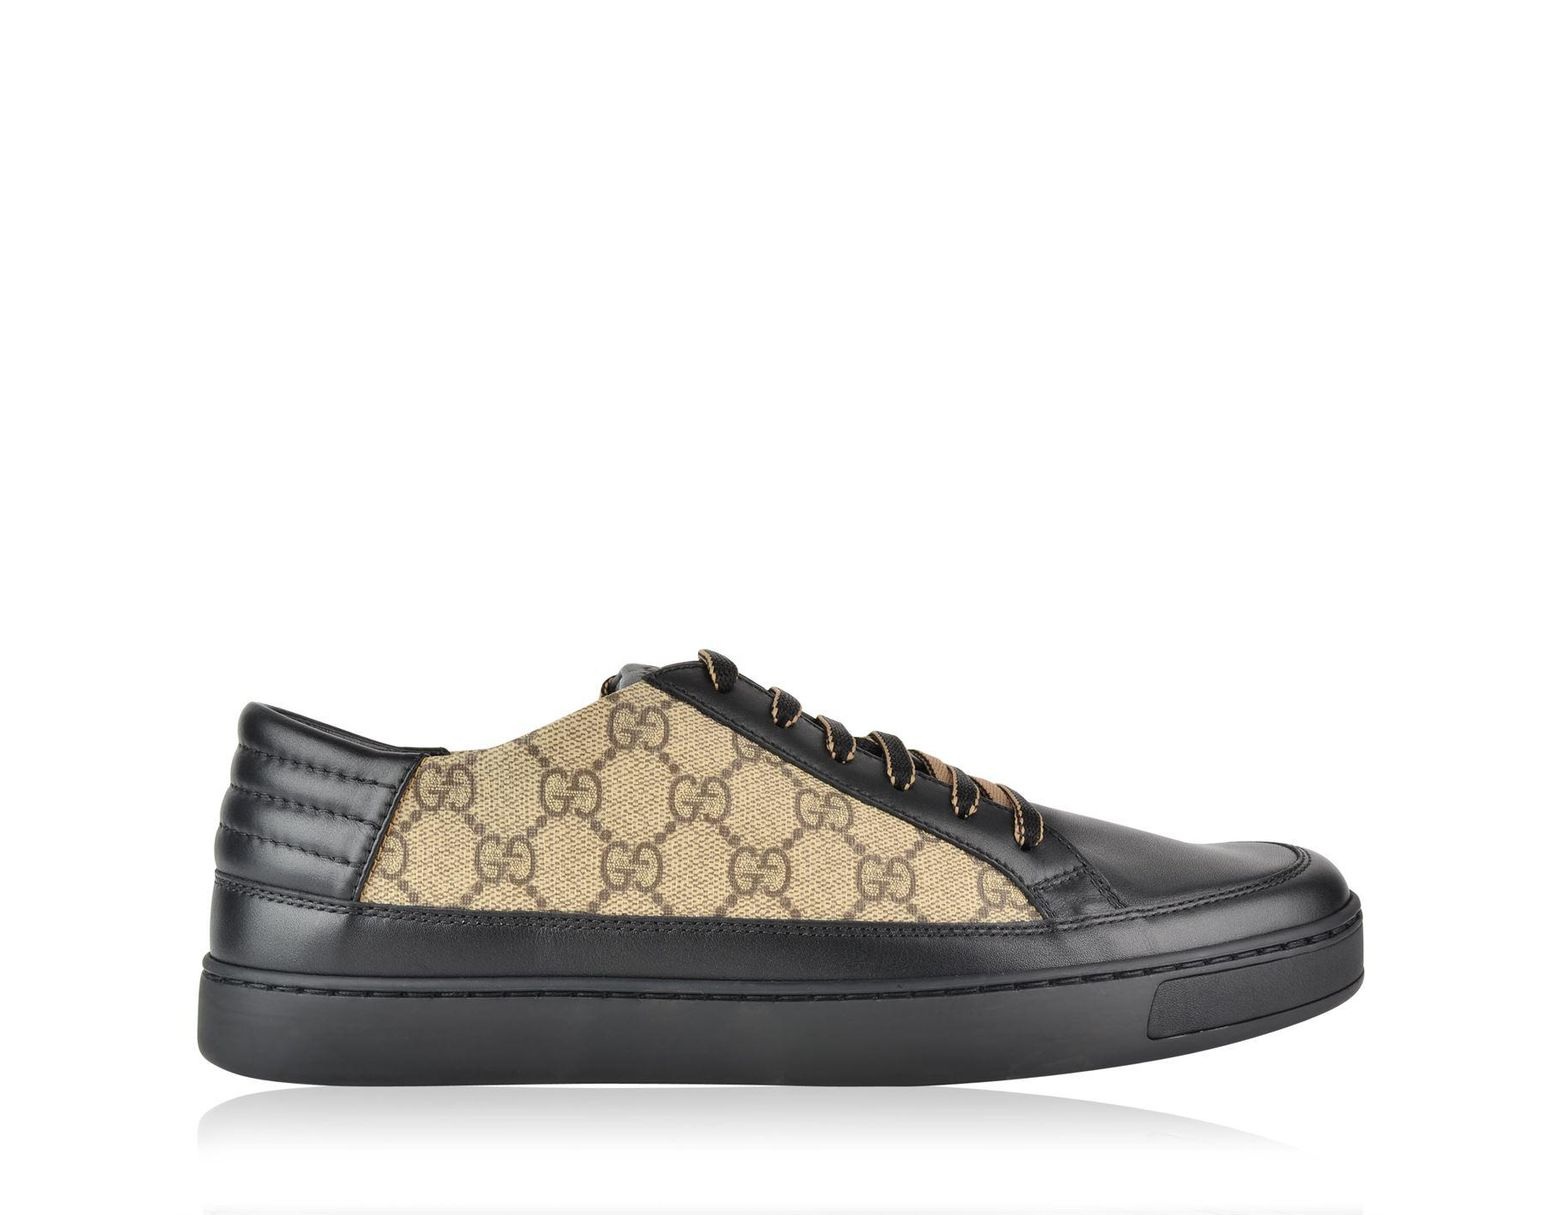 777f1daf13d Gucci Common Low Gg Supreme Trainers in Black for Men - Lyst